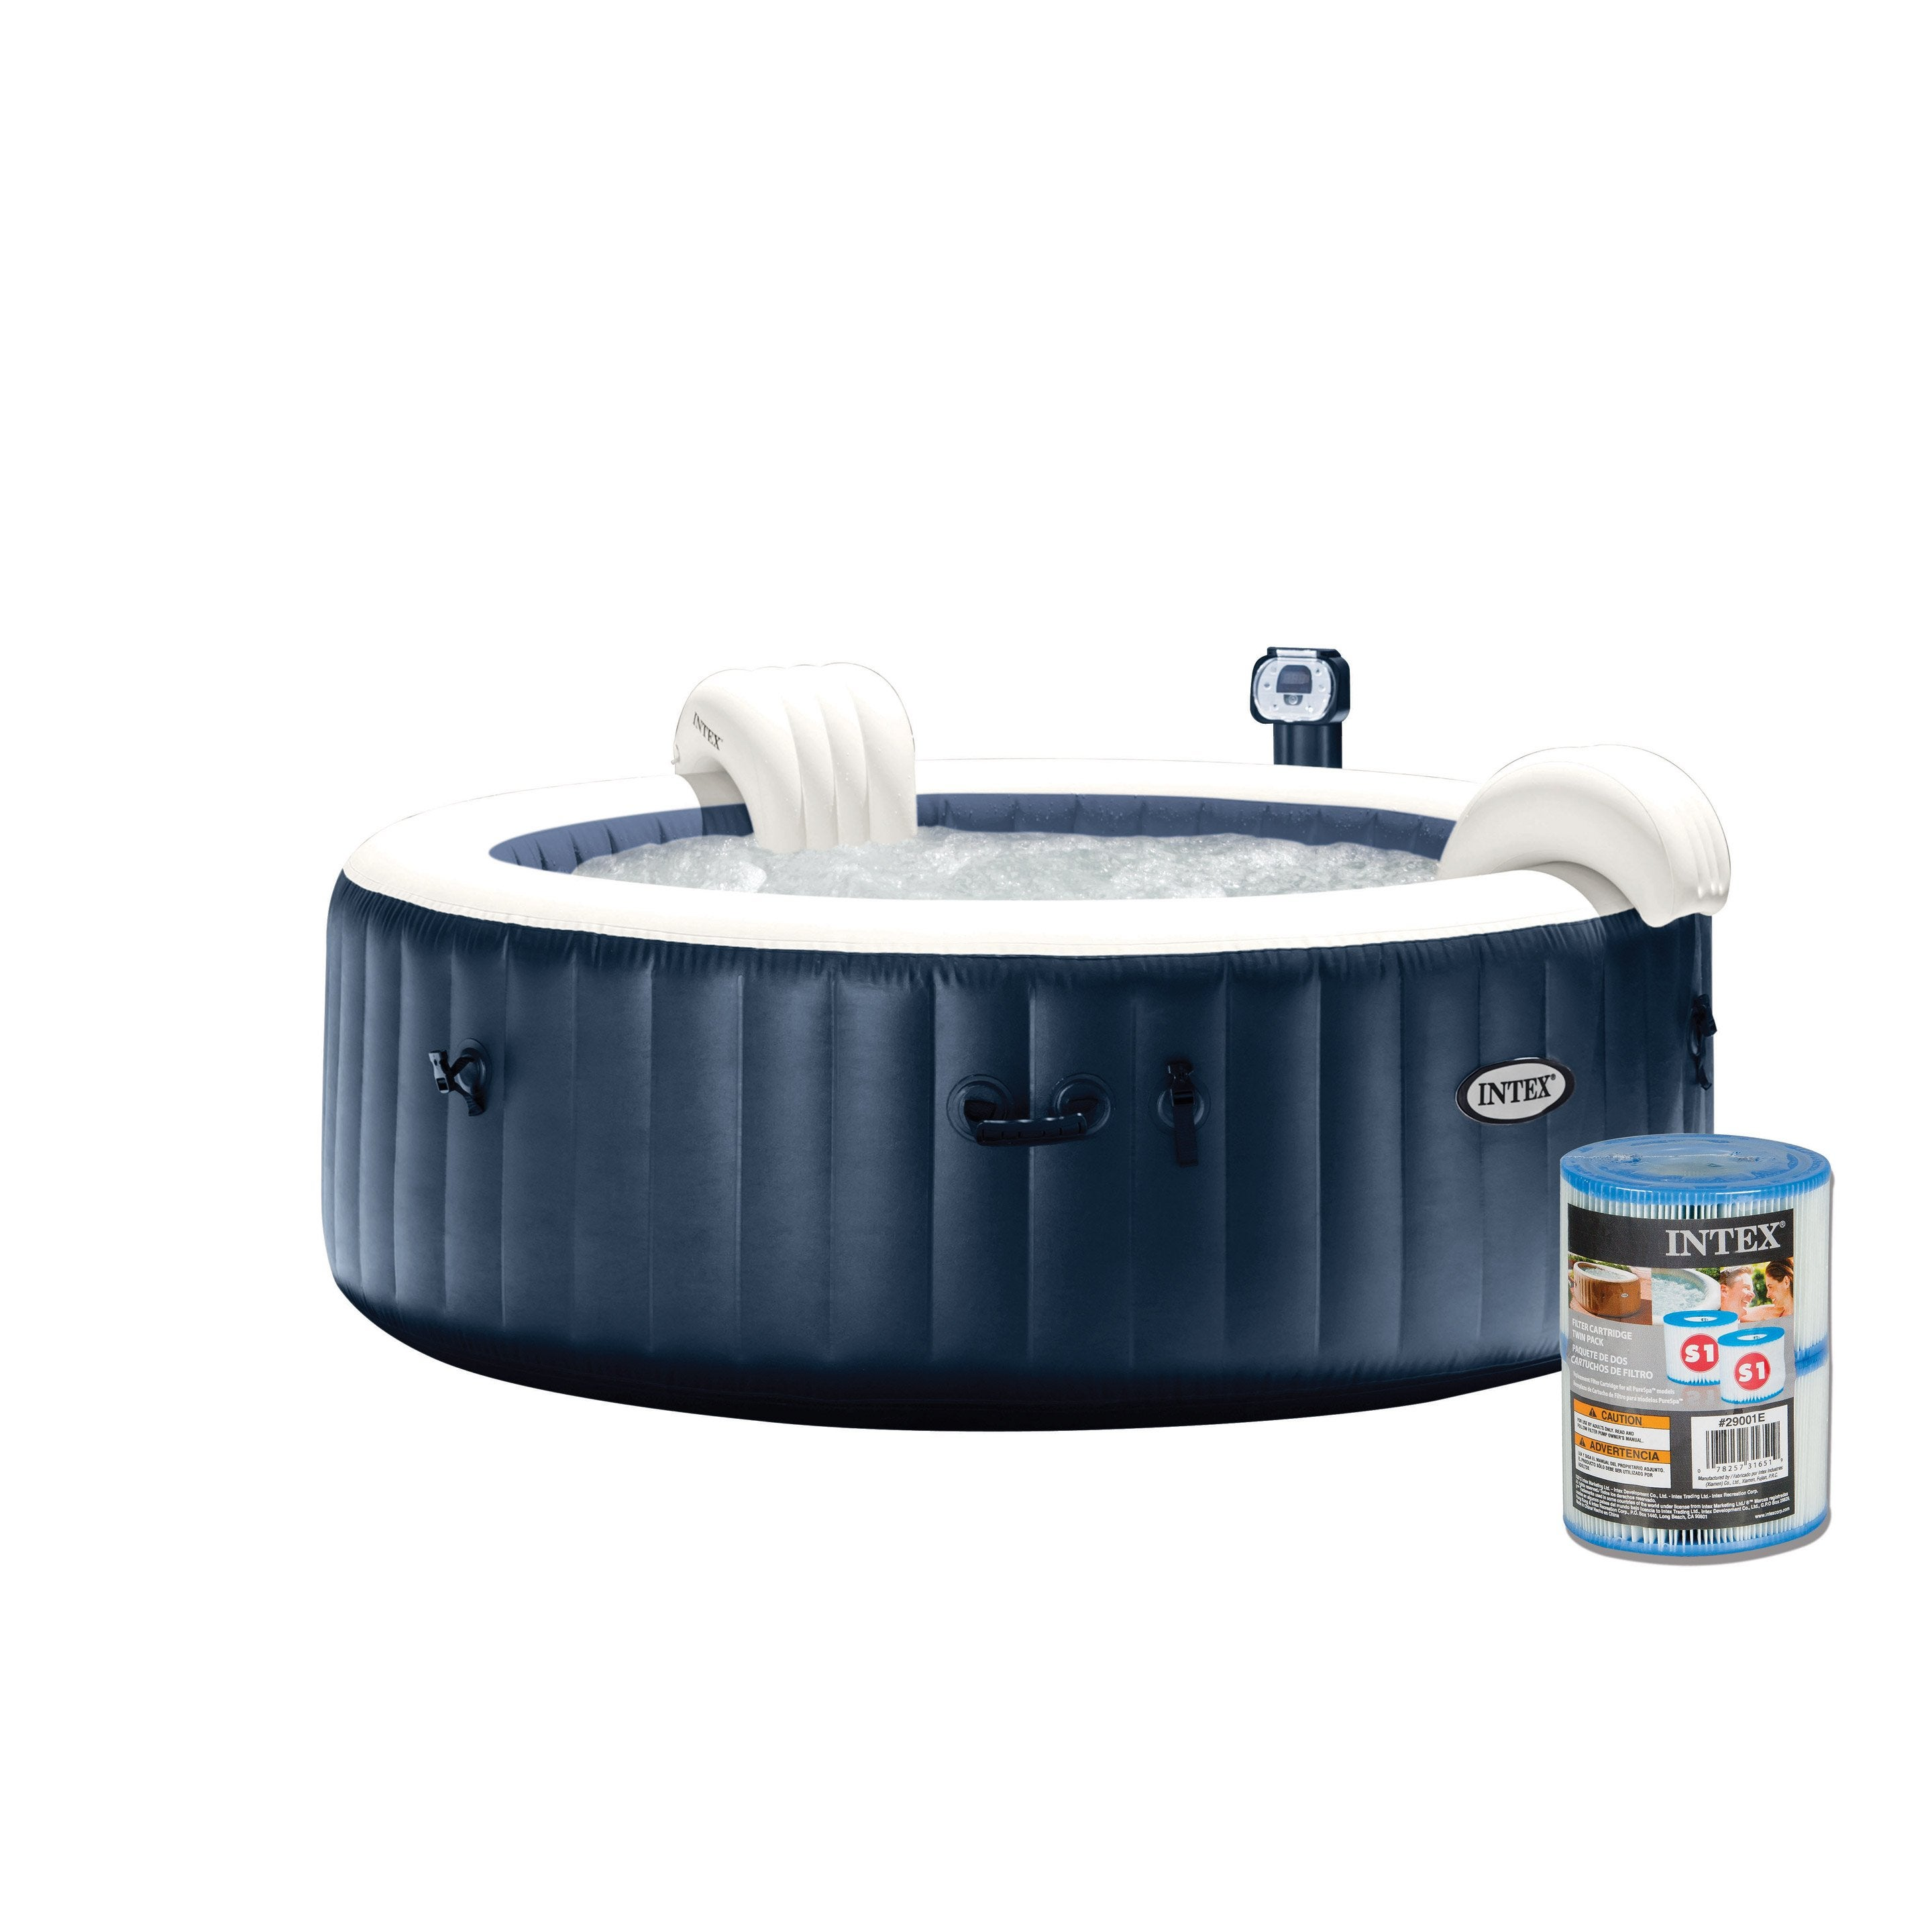 Leroy Merlin Spa Intex spa gonflable intex purespa rond, 4 places assises